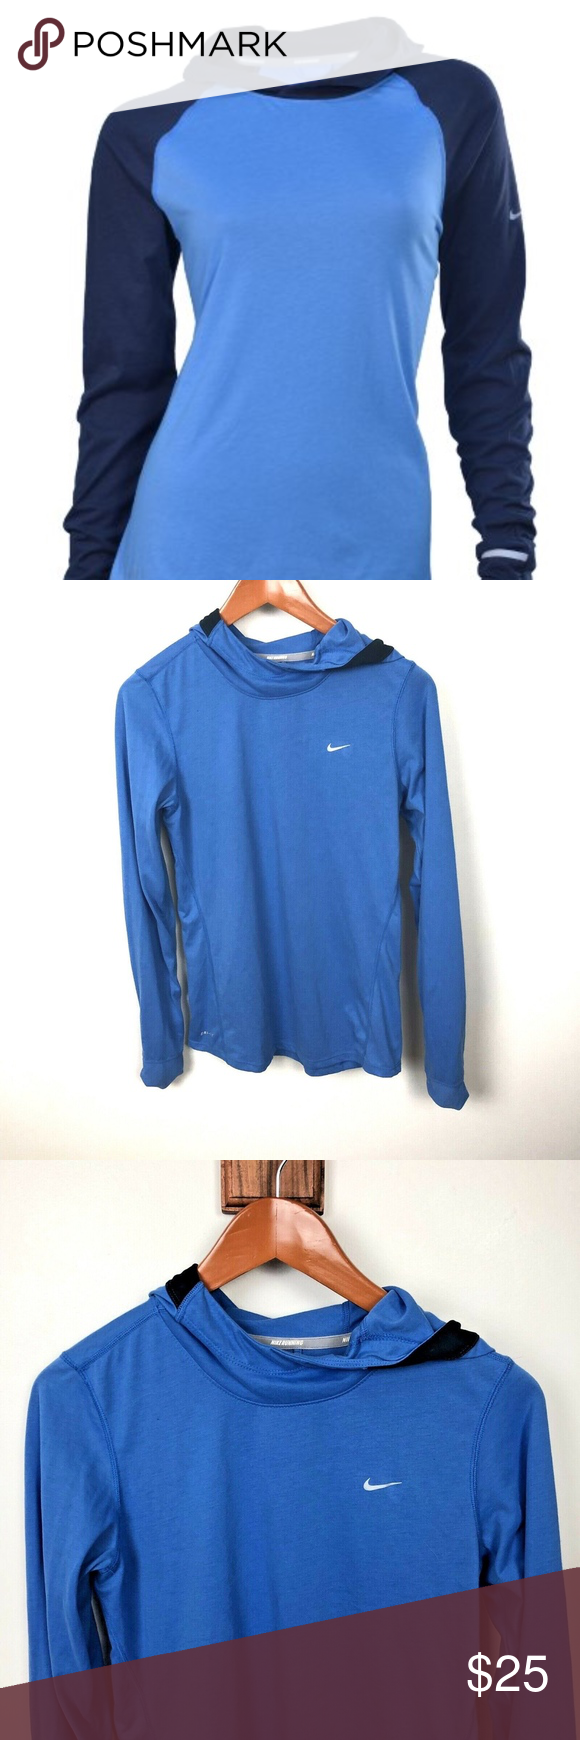 Women's Dri Fit Hoodie / From 75 manufacturers & suppliers.